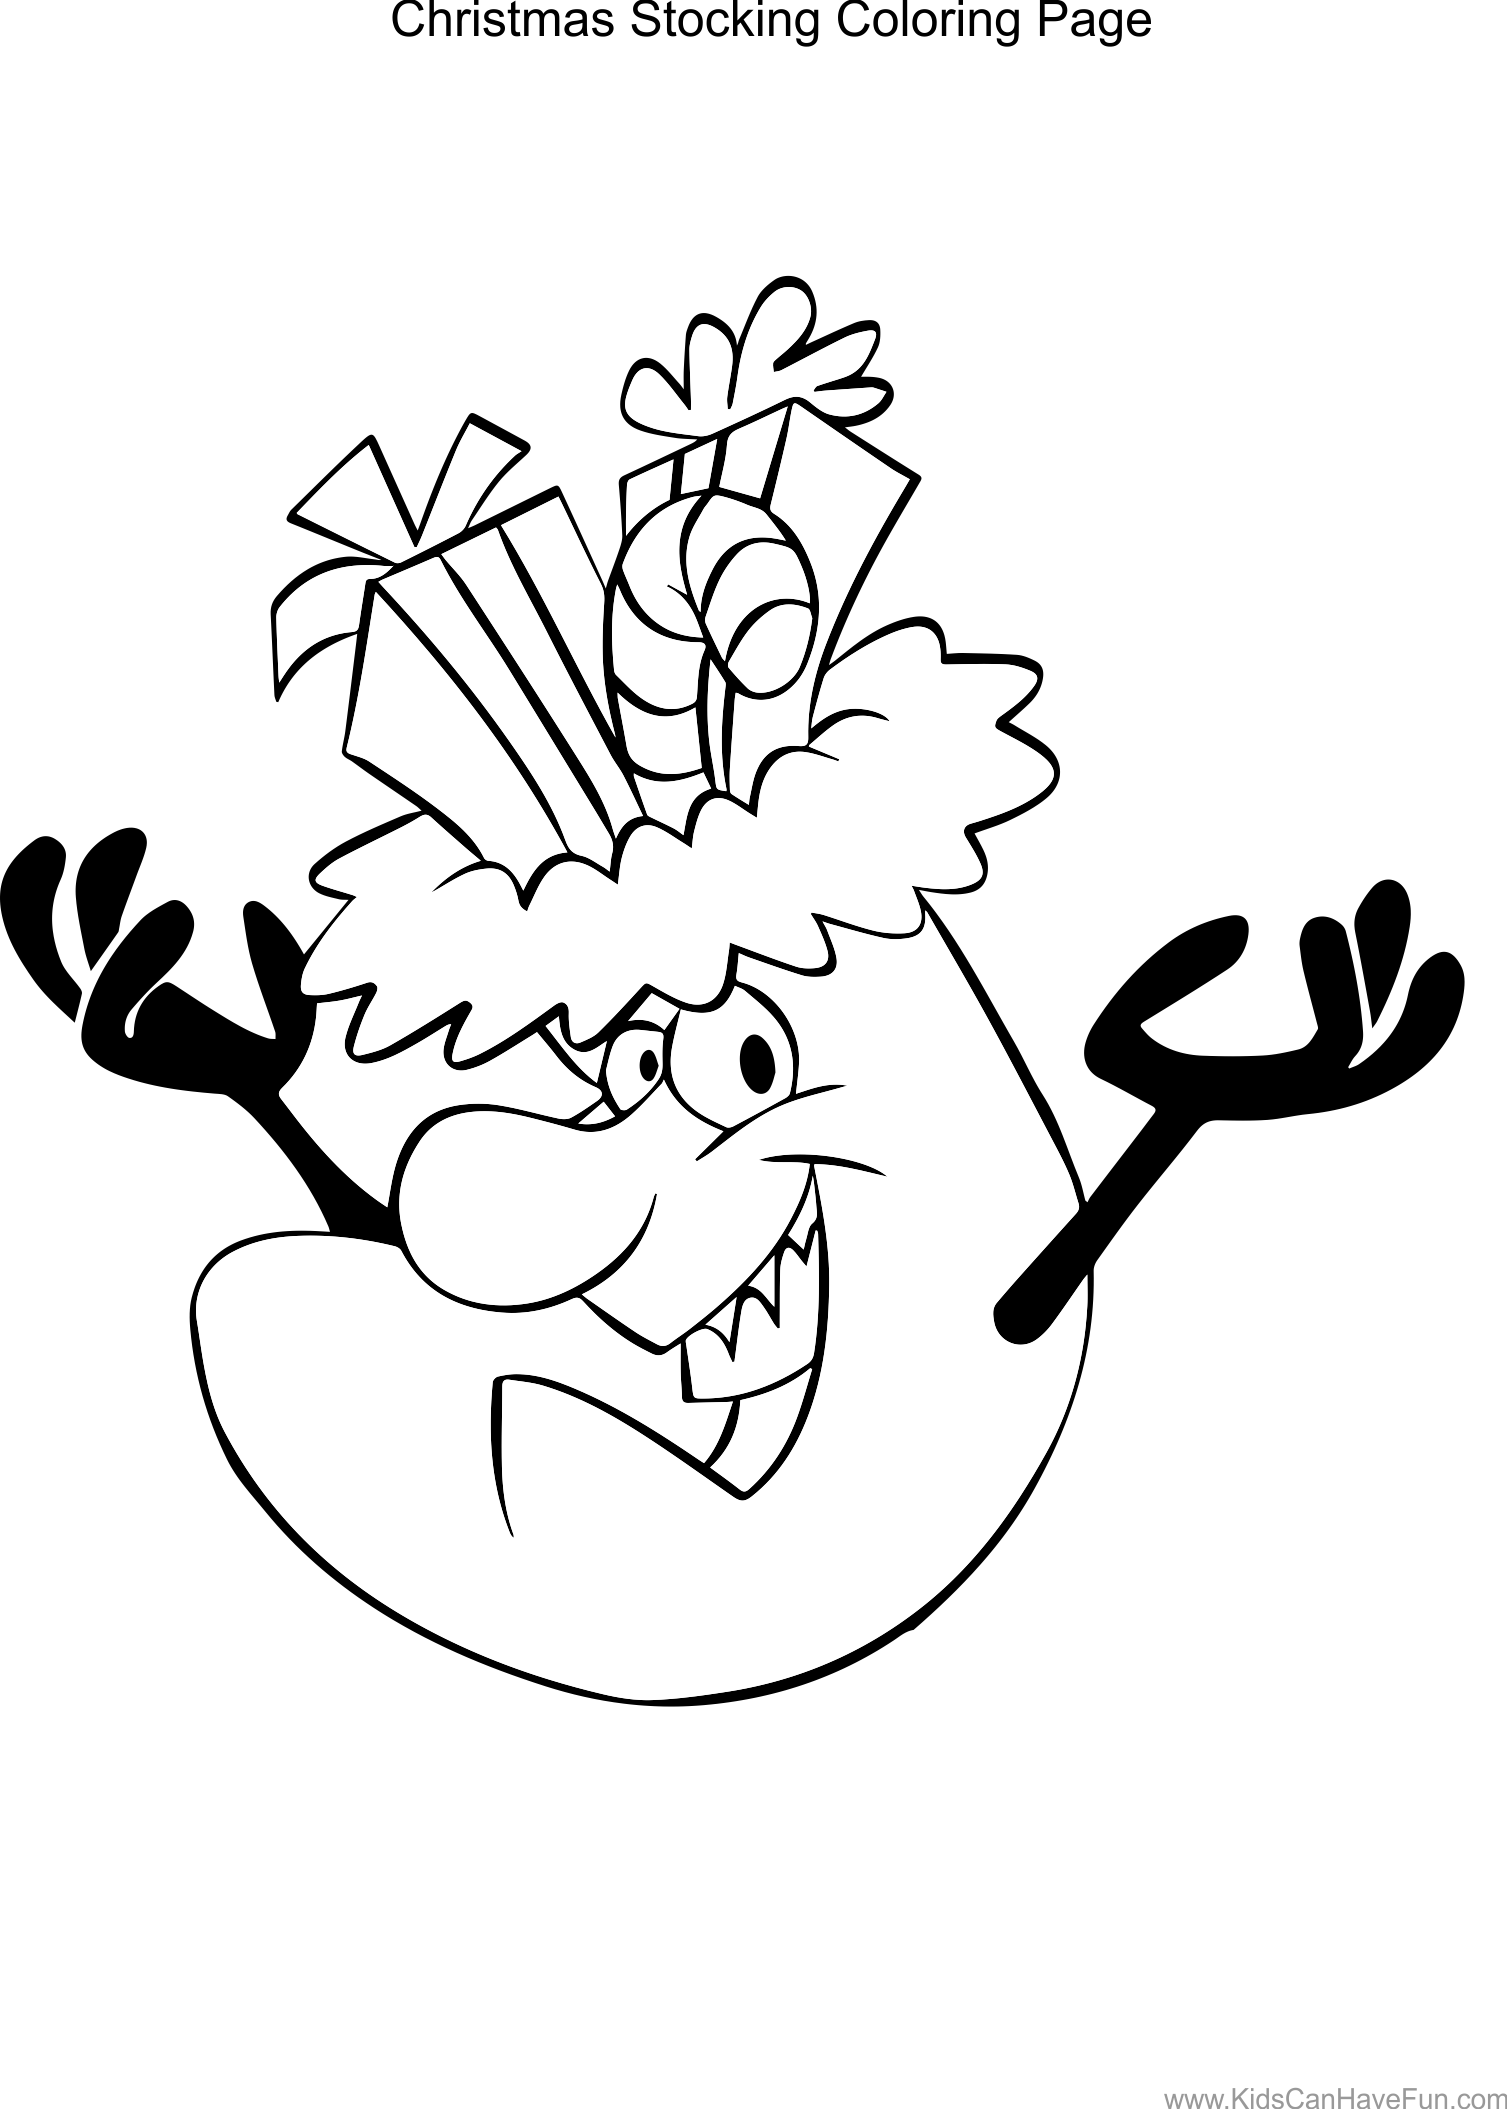 Christmas Stocking Coloring Page http://www.kidscanhavefun.com ...